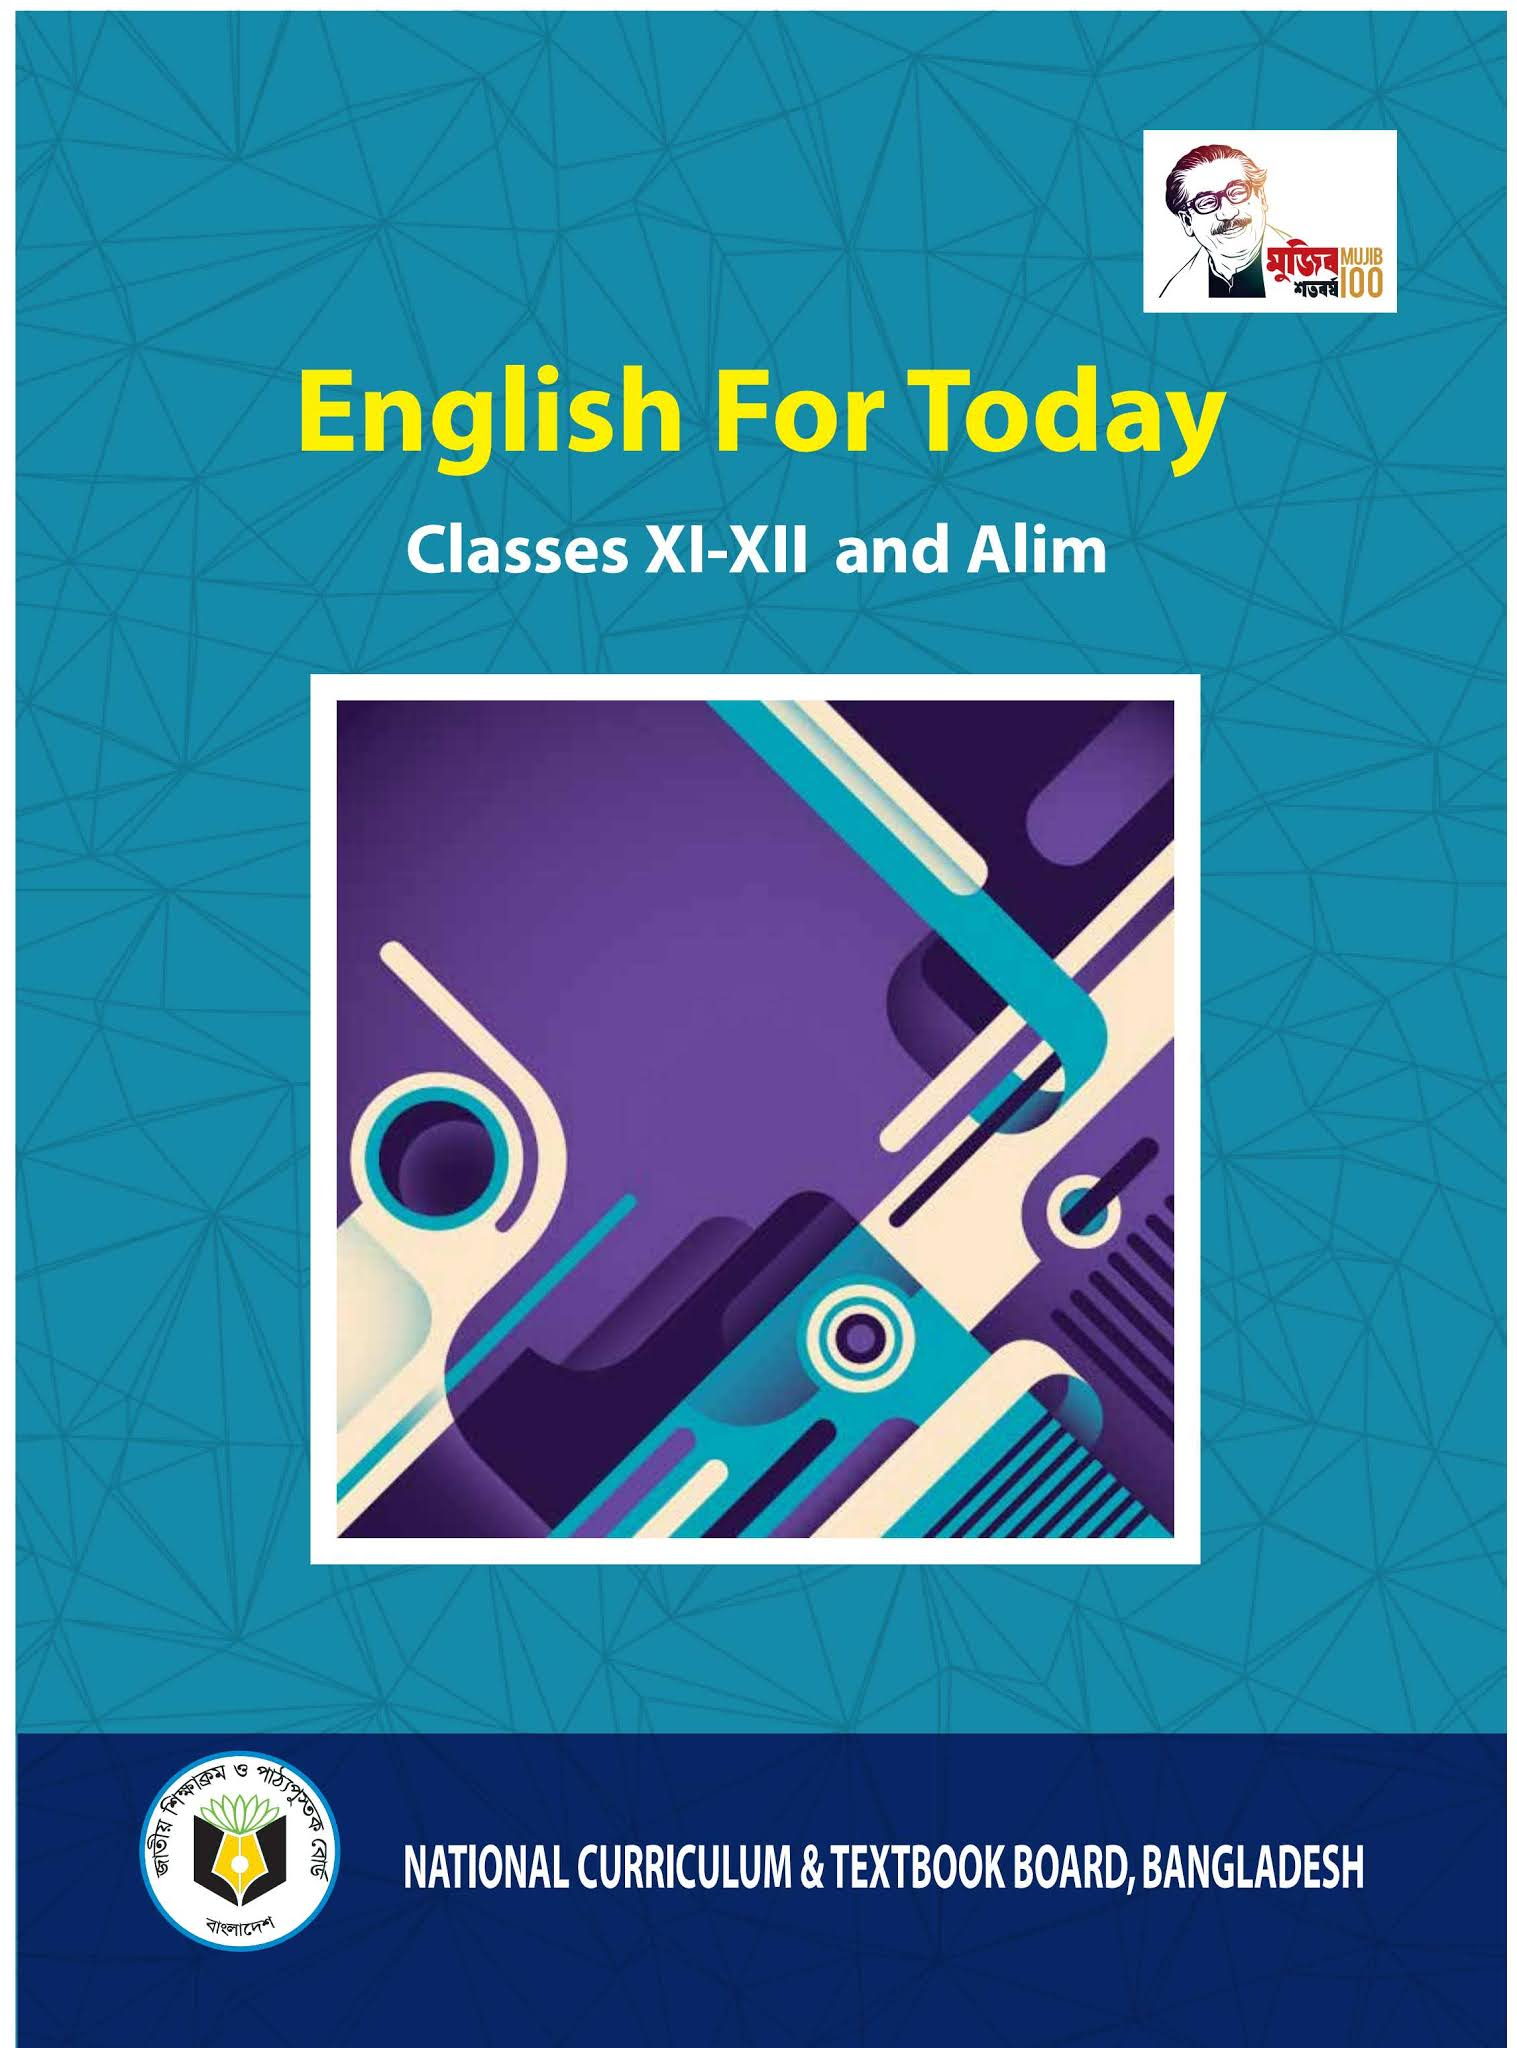 Hsc English For Today Book 2020-21 Pdf